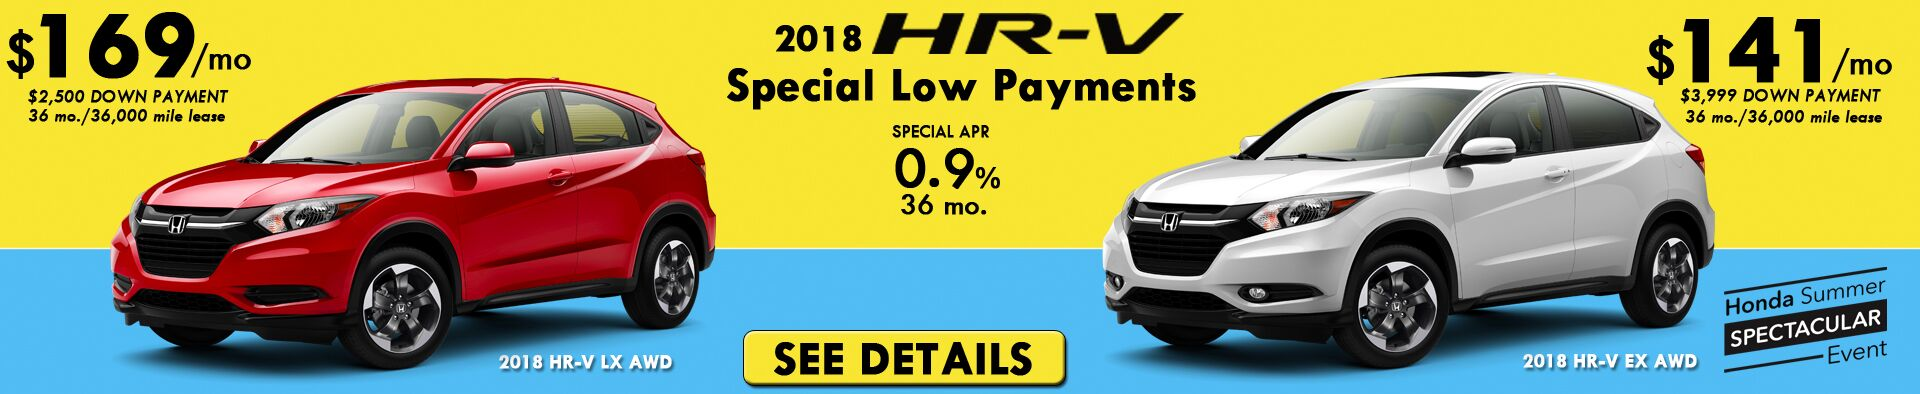 HR-V Special Lease Payments